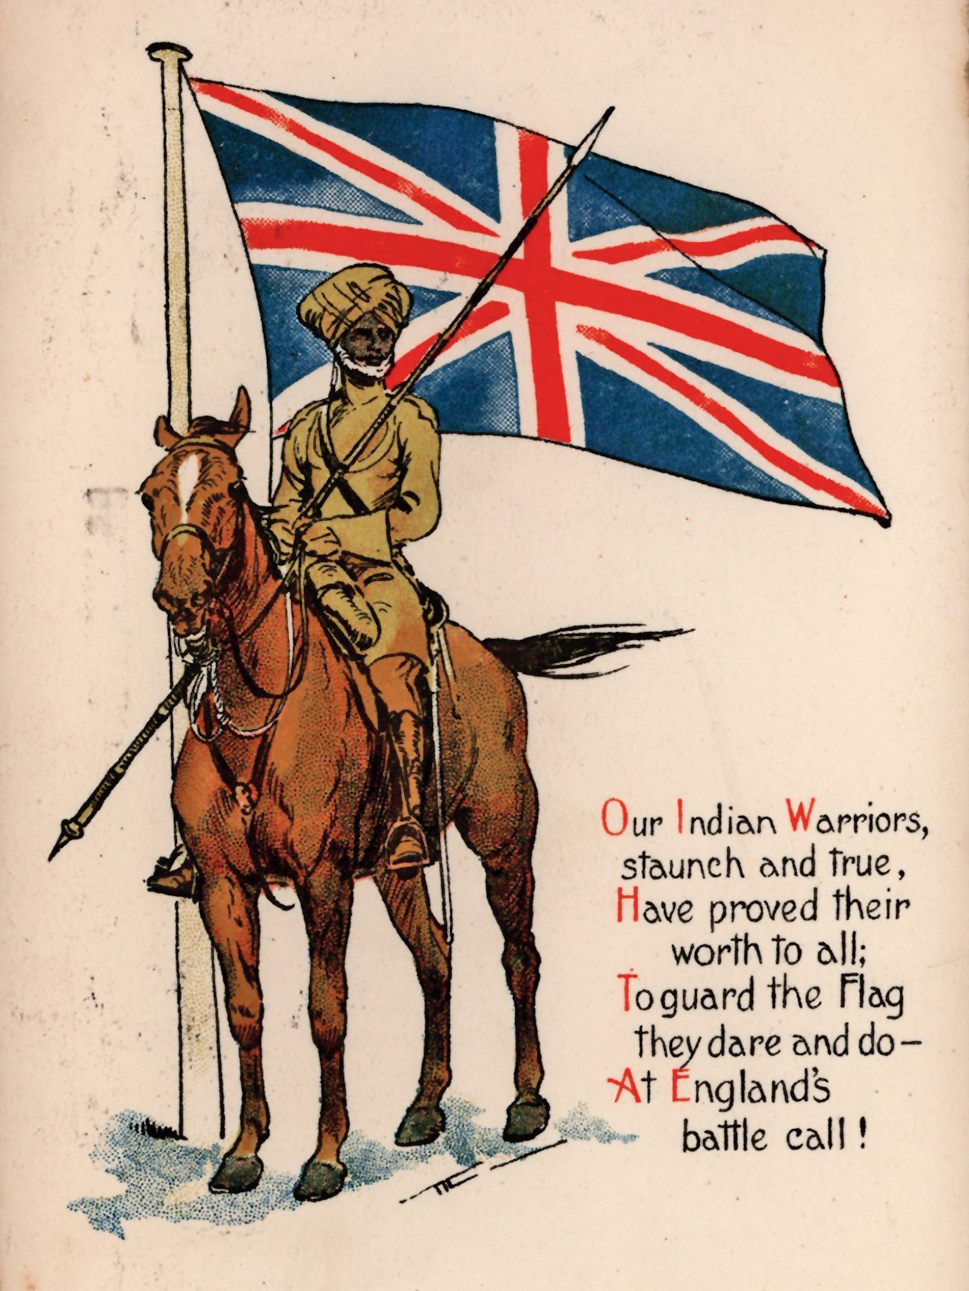 A wartime postcard from the First World War with a patriotic poem, 'Our Indian Warriors' illustrated with a Sikh cavalryman